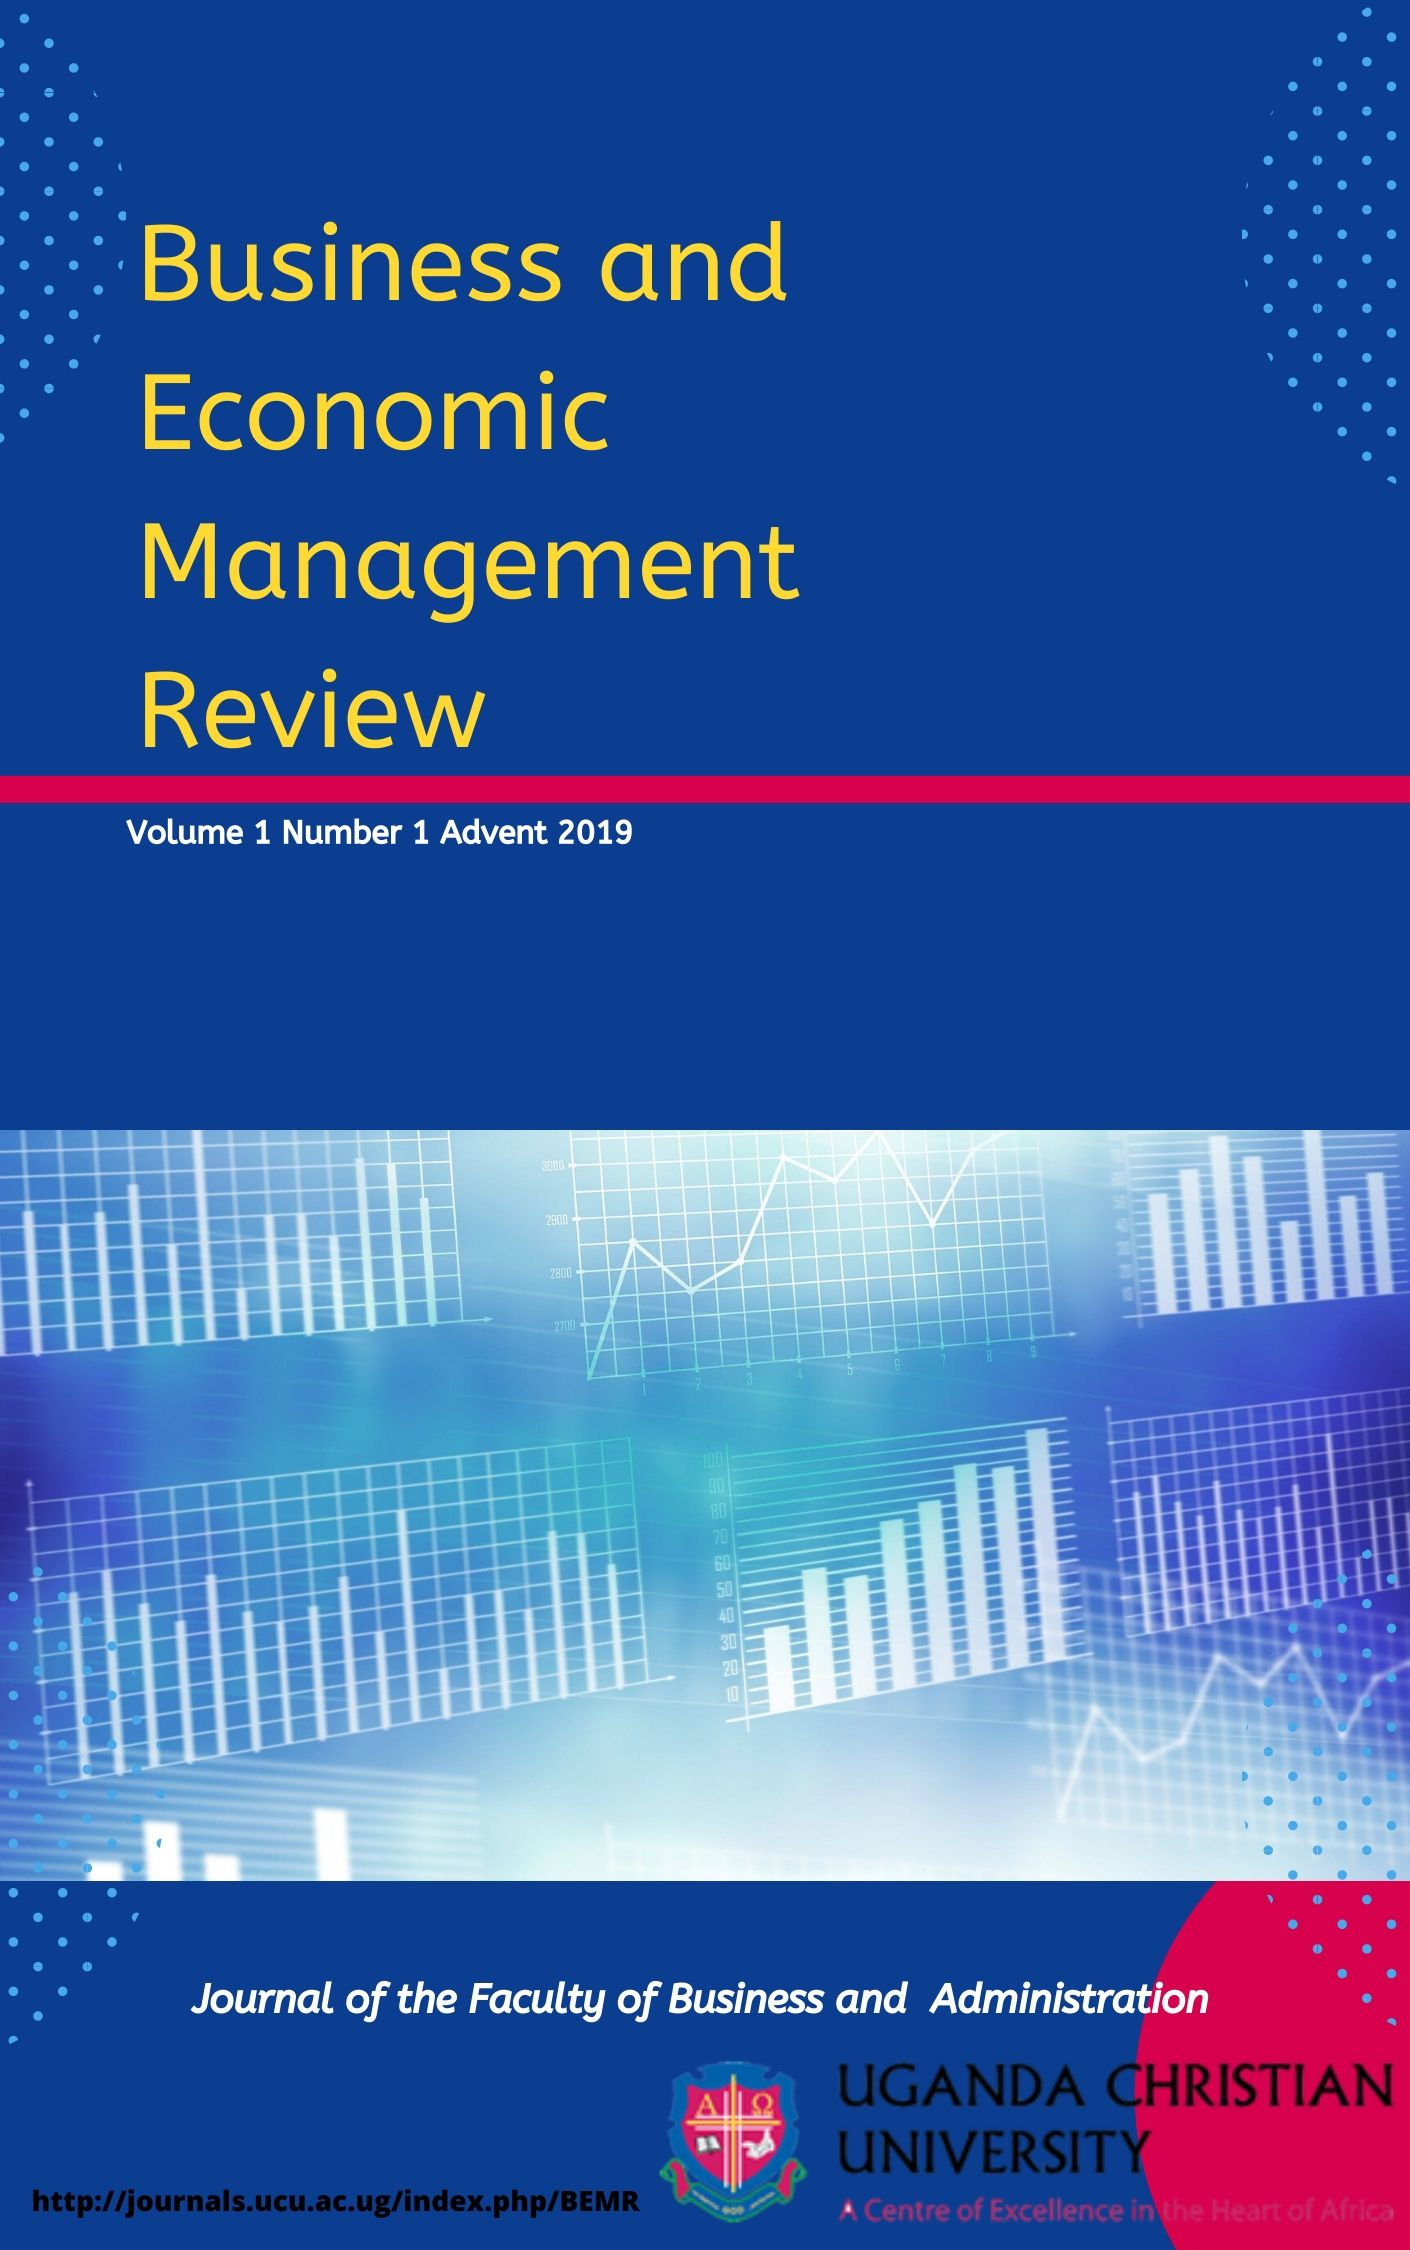 Business and Economic Management Review